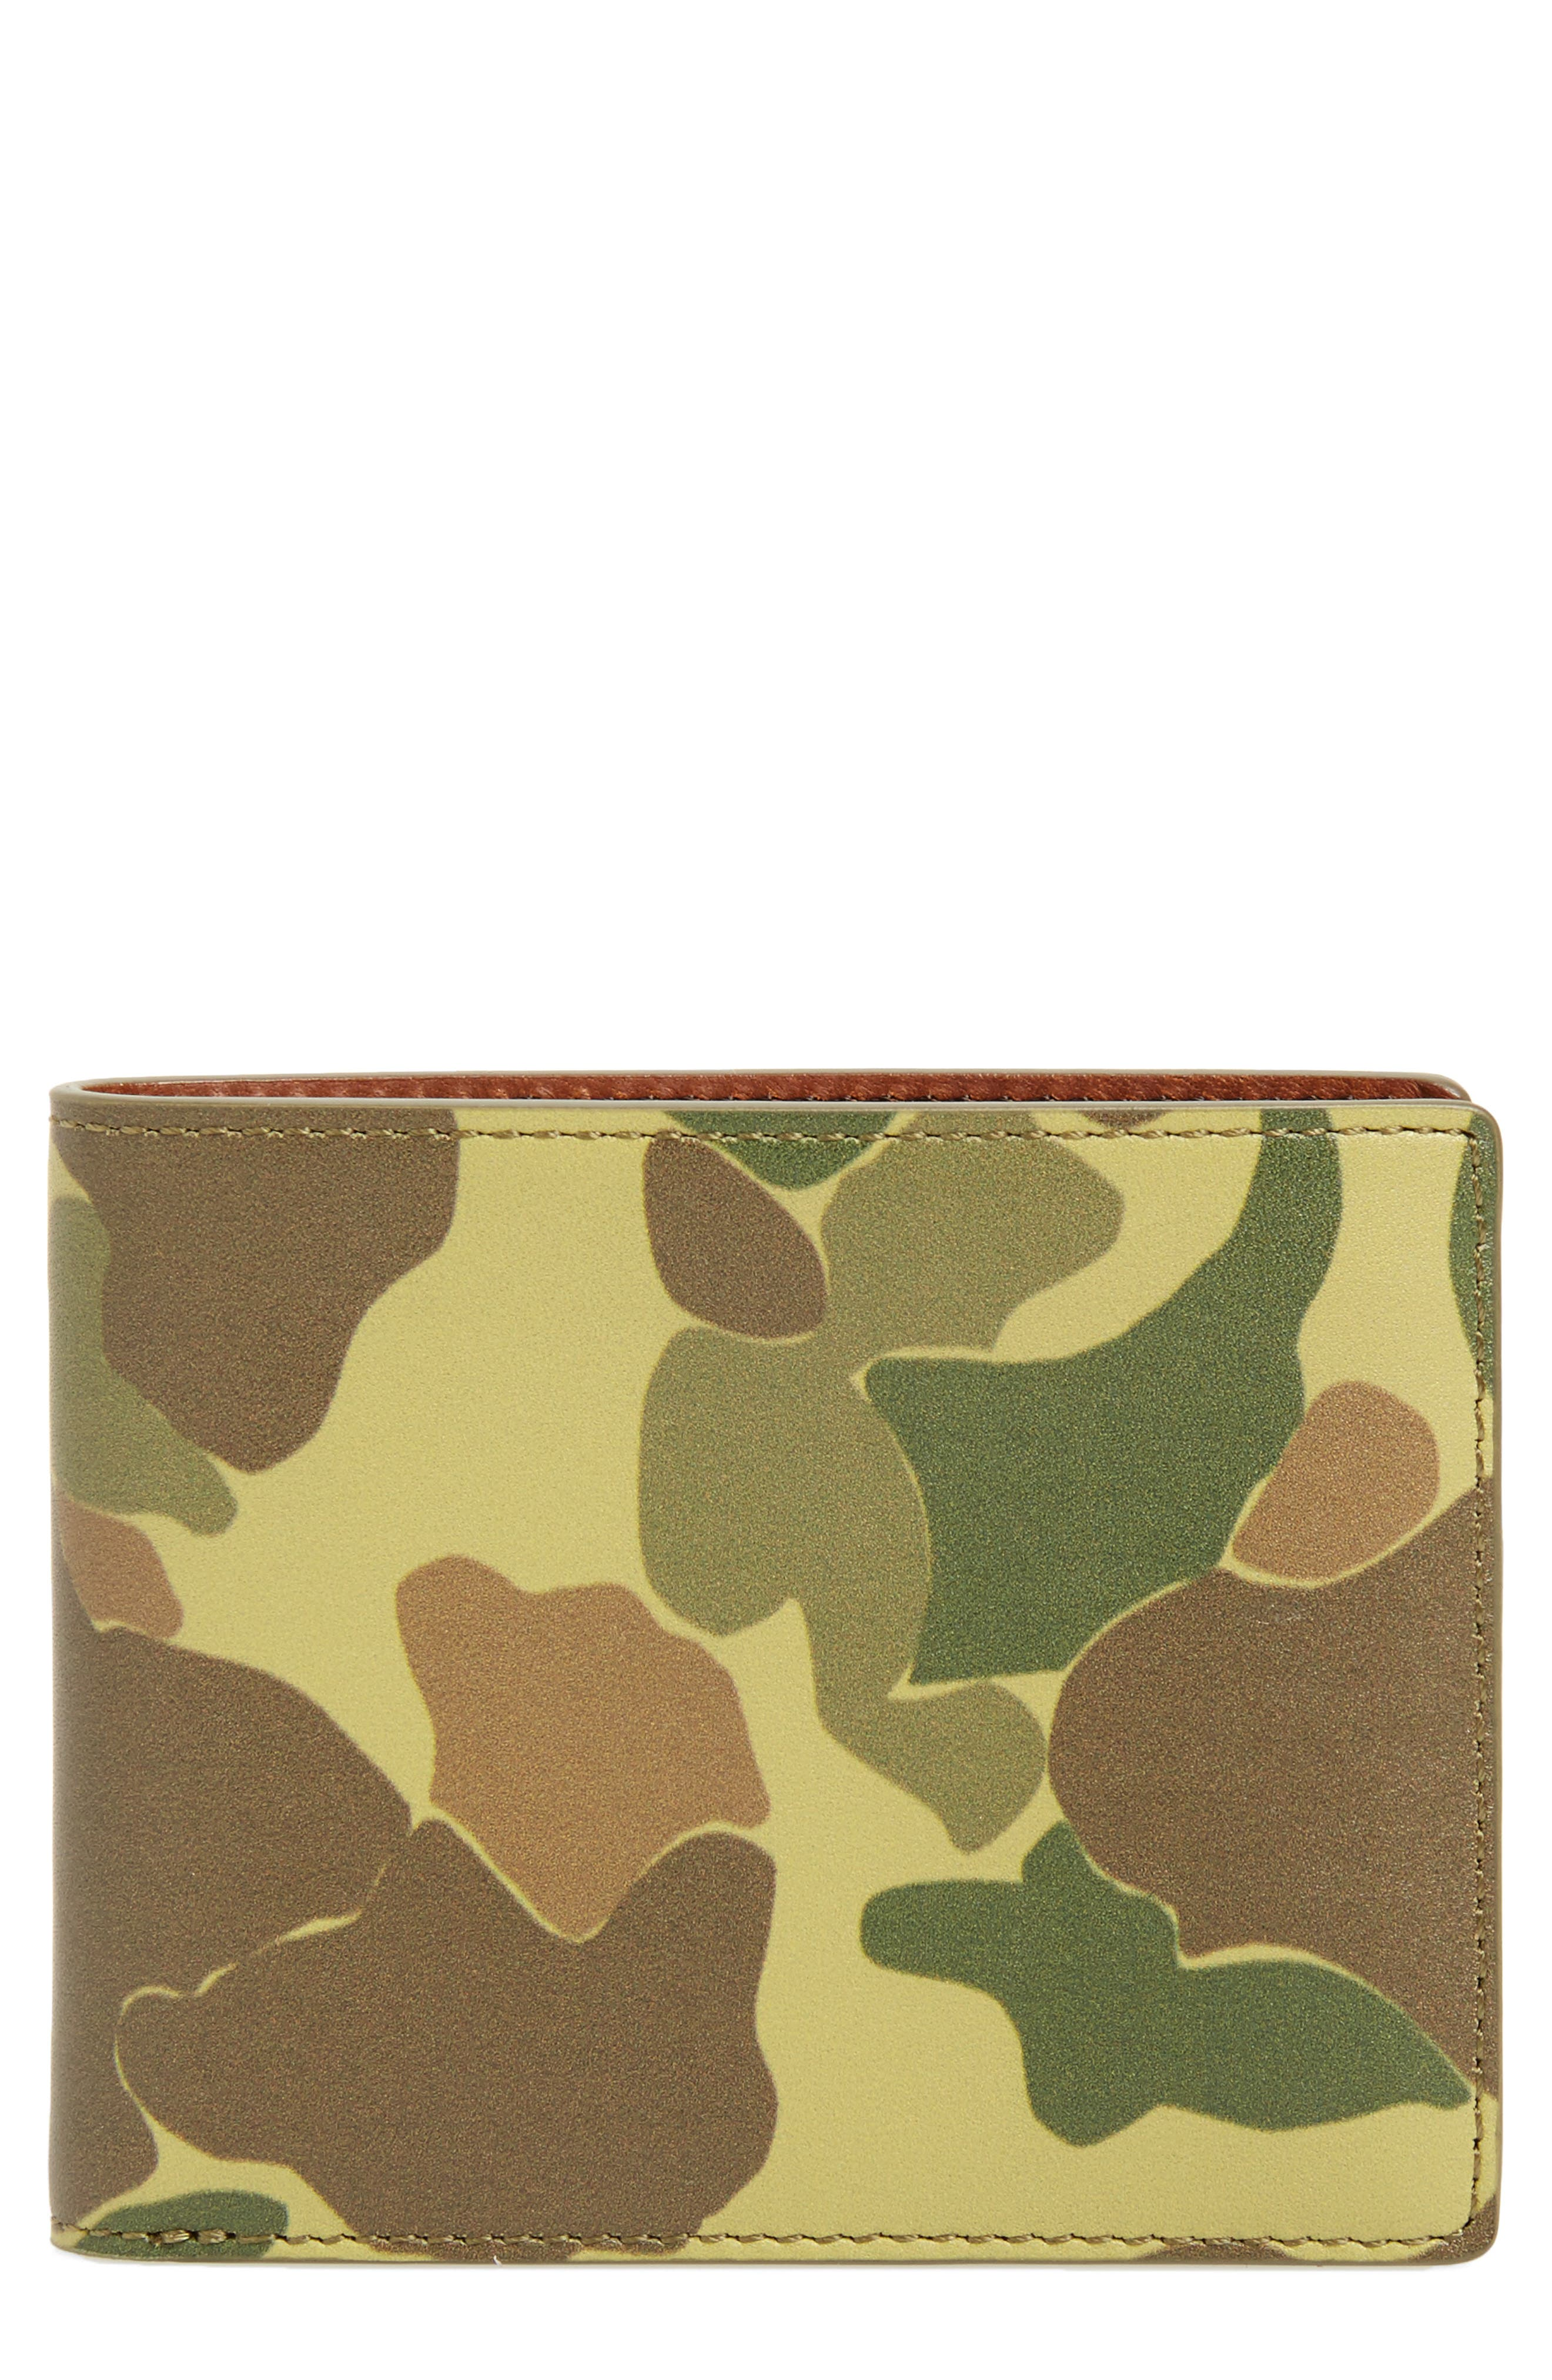 Hampshire Leather Bifold Wallet,                             Main thumbnail 1, color,                             Camo